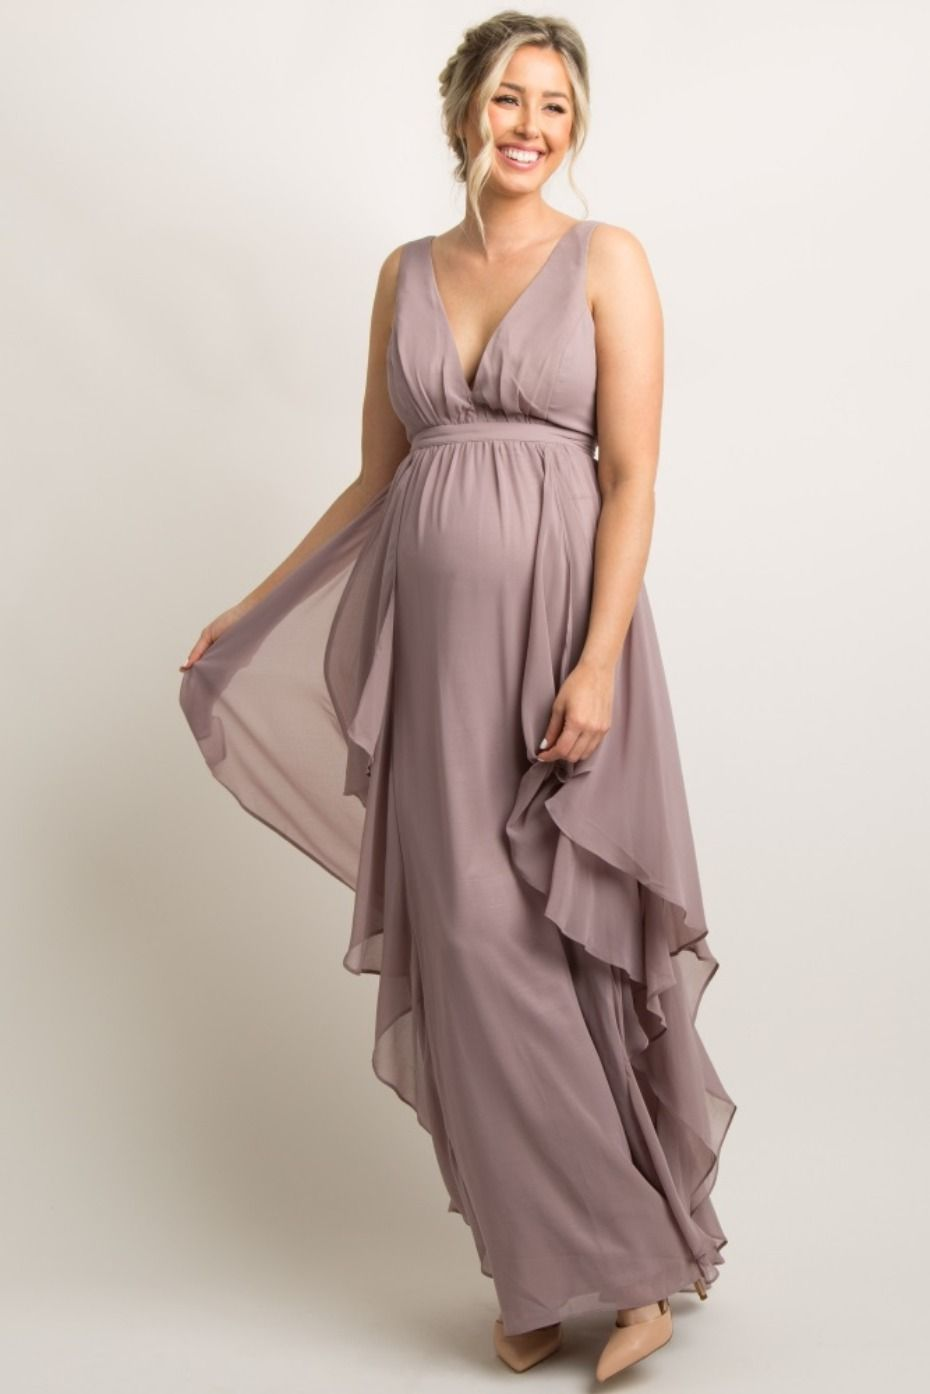 Bridesmaid Dresses Your Pregnant Friends Can Wear Maternity Bridesmaid Dresses Dresses For Pregnant Women Maternity Gowns [ 1394 x 930 Pixel ]